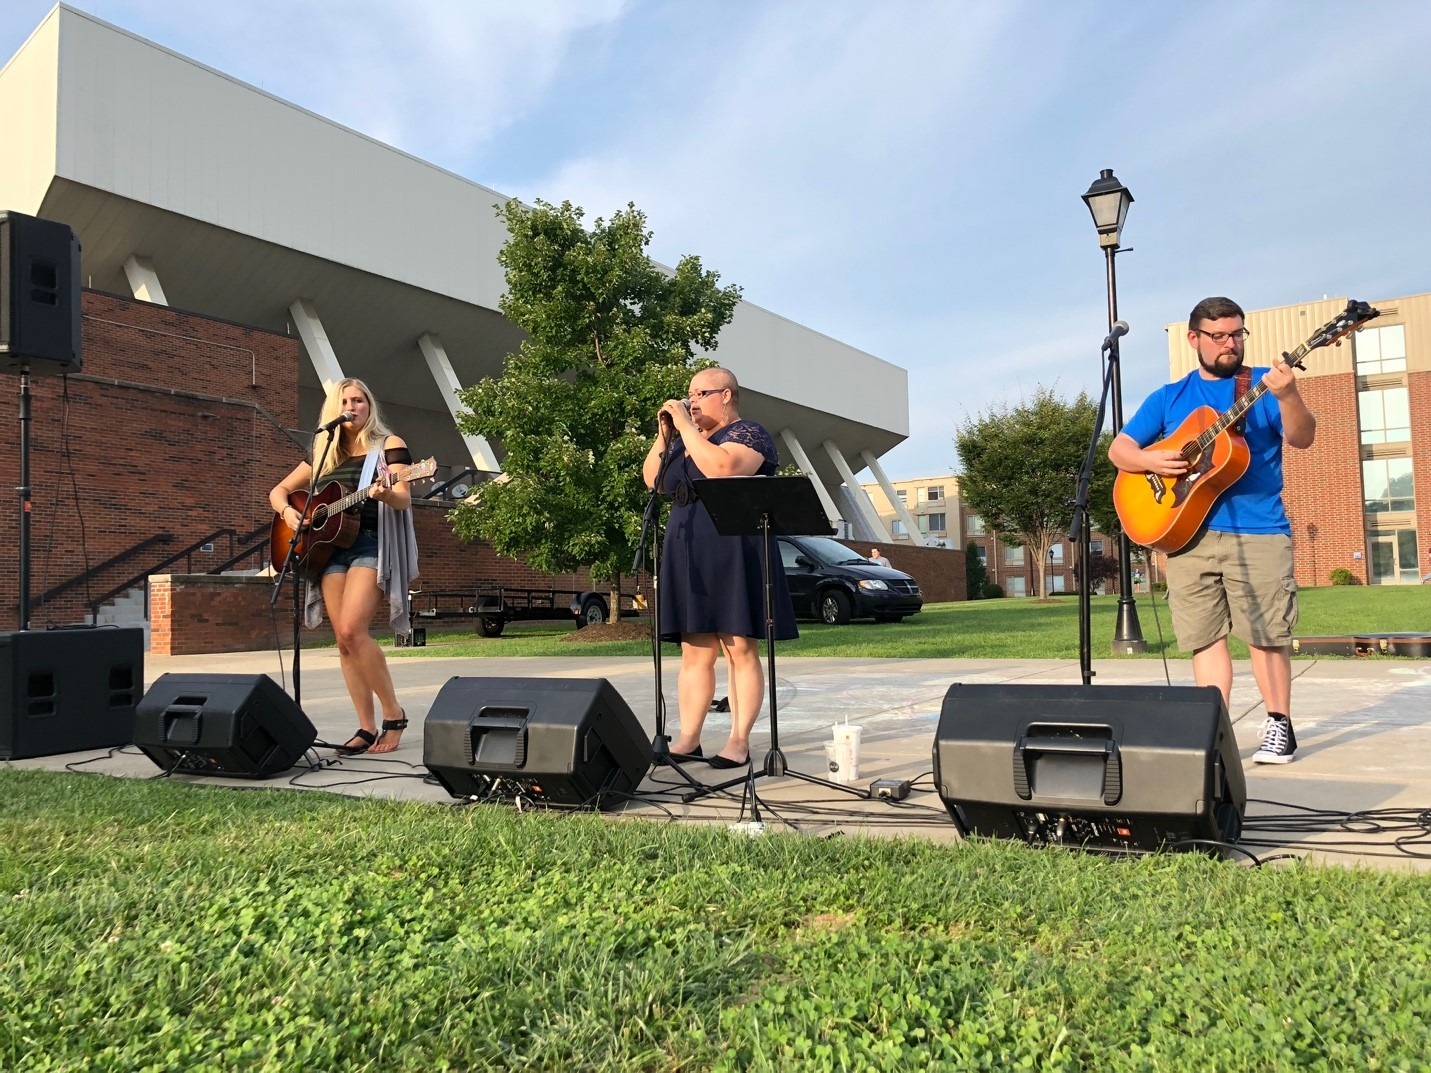 Local Musicians Holly and the Guy and Emmy Davis performed live music while students browsed and mingled during Friday's Taste of Huntington event.